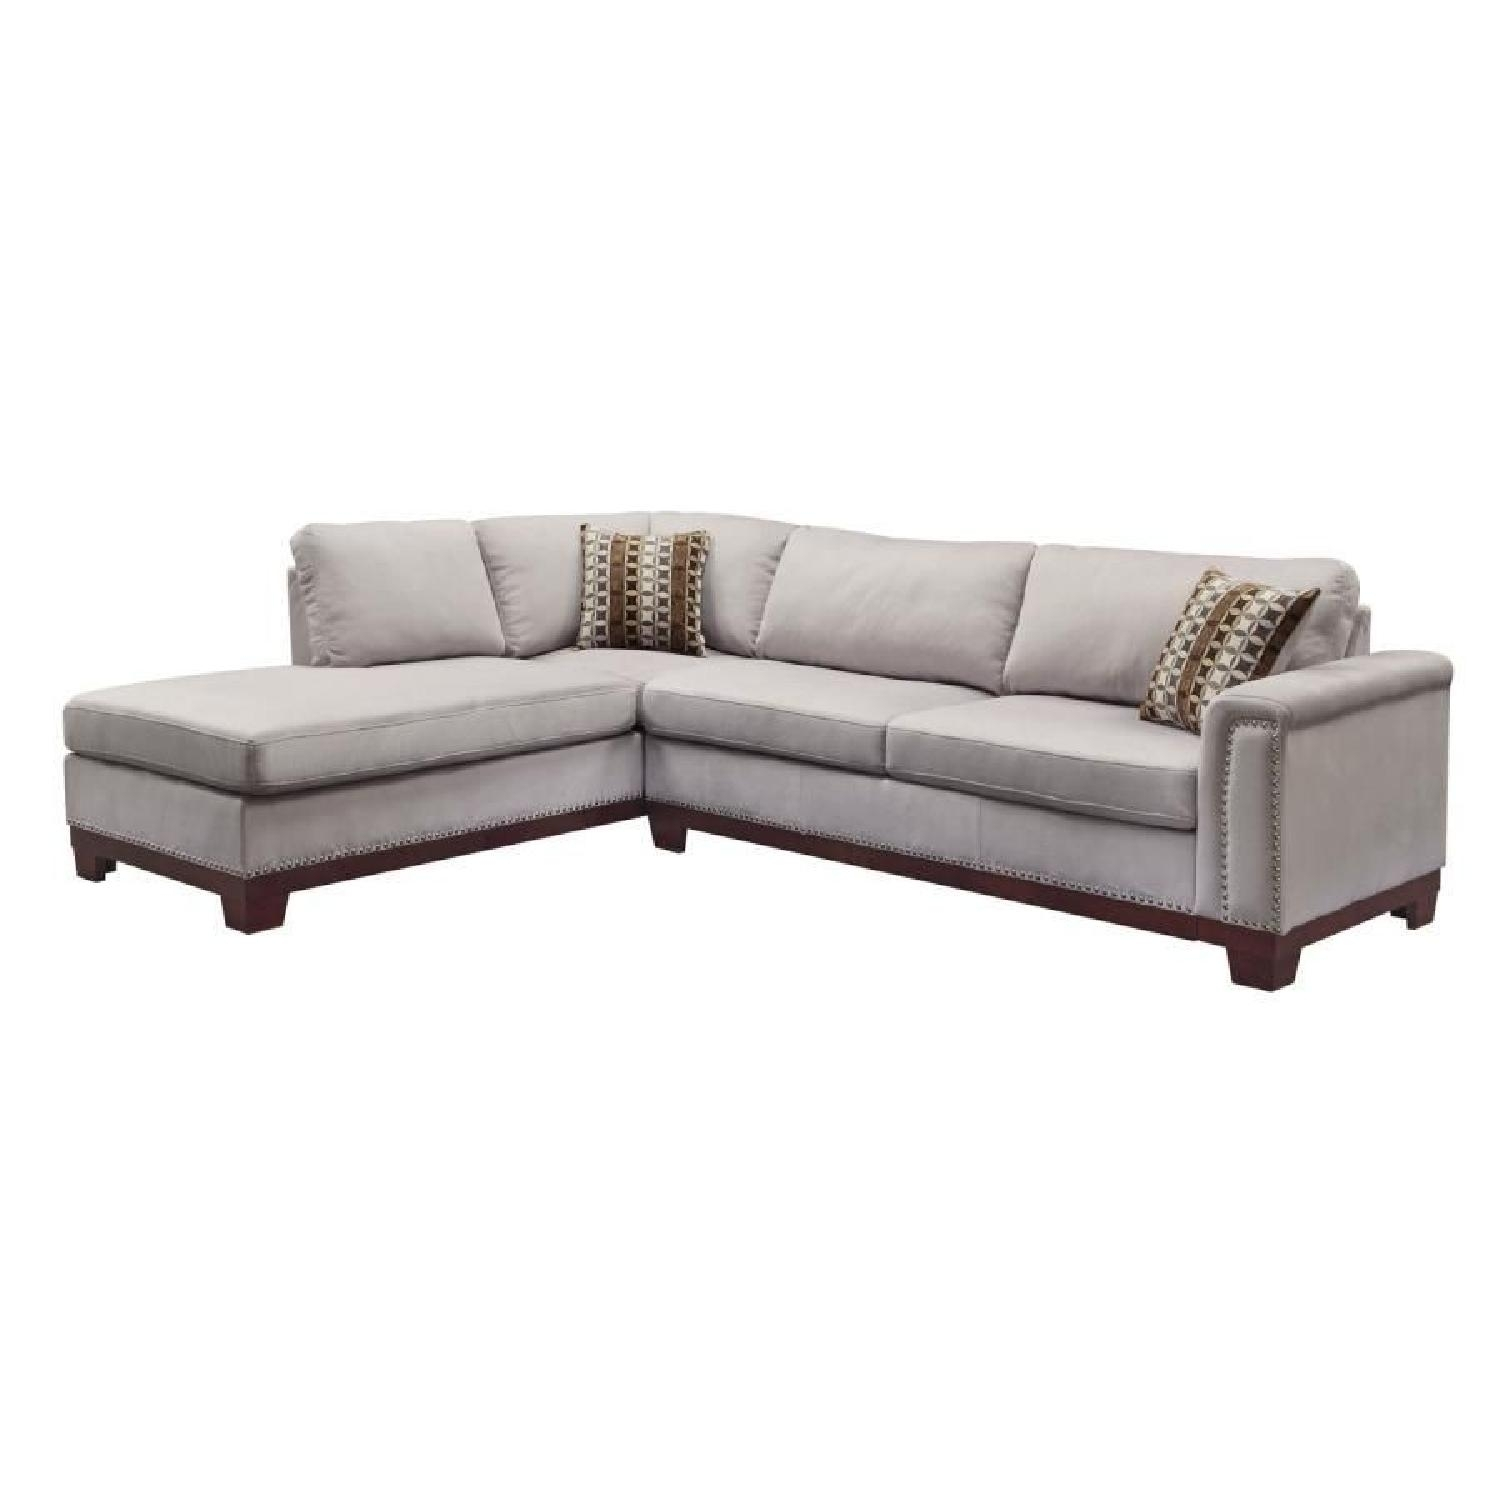 Sofa With Reversible Chaise Lounge | Home Furniture Ideas in Mcculla Sofa Sectionals With Reversible Chaise (Image 28 of 30)